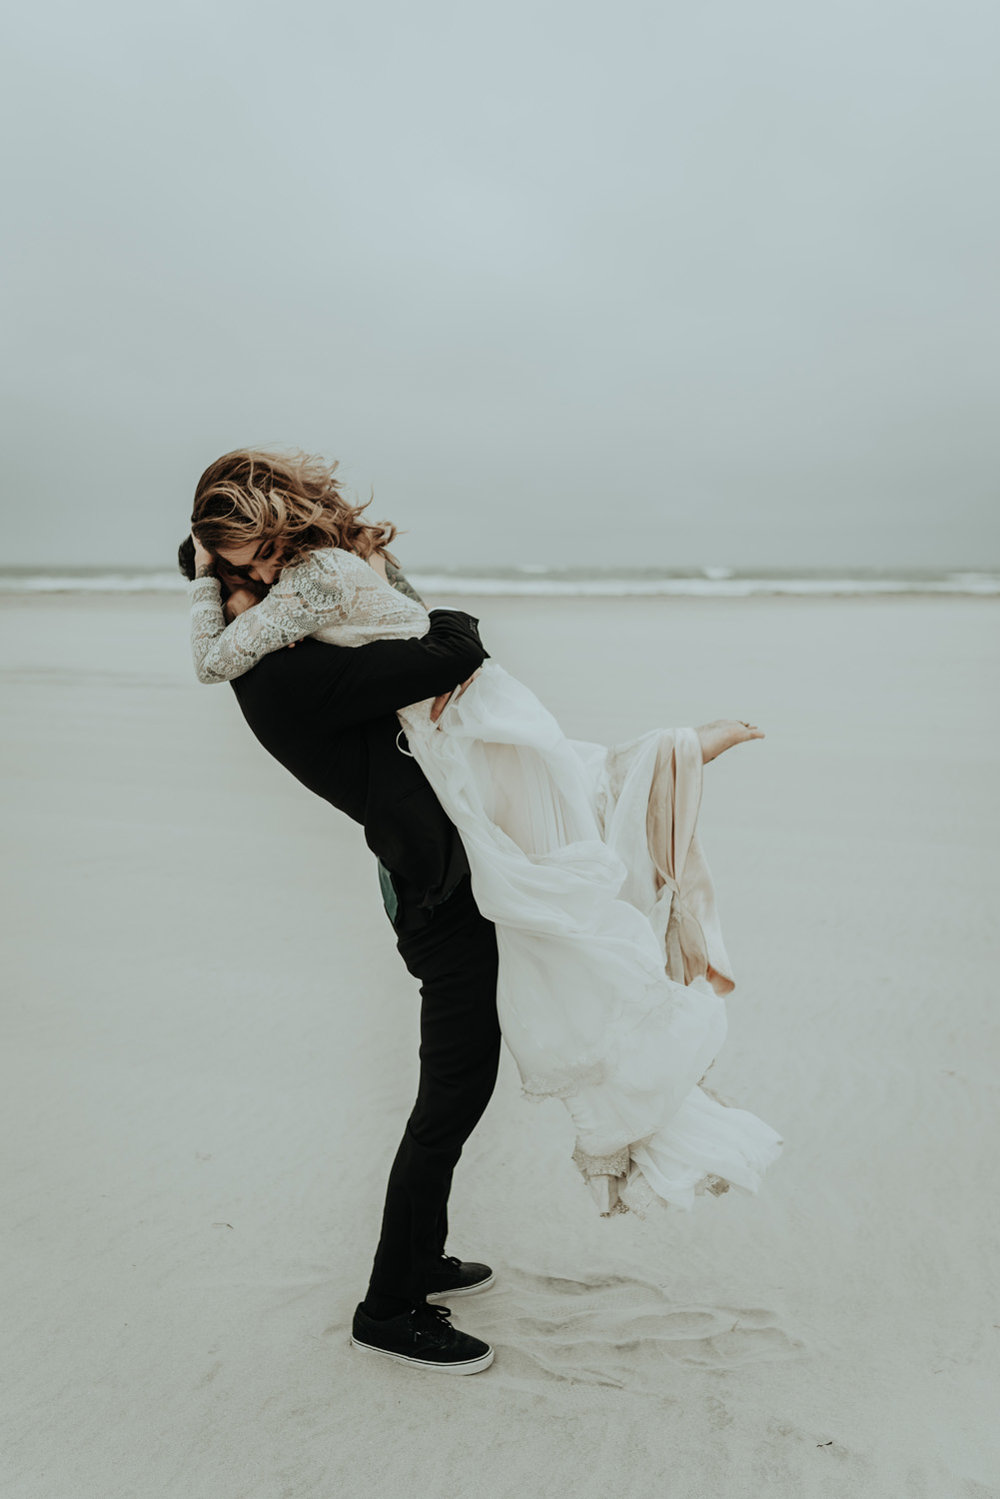 kylewillisphoto_kyle_Willis_Photography_liz_gibbs_brigantine_beach_atlantic_city_wedding_philadelphia_jersey_shore_new_nyc_engagement_delaware_engaged_married_rainy_photos_ac_boho12.jpg